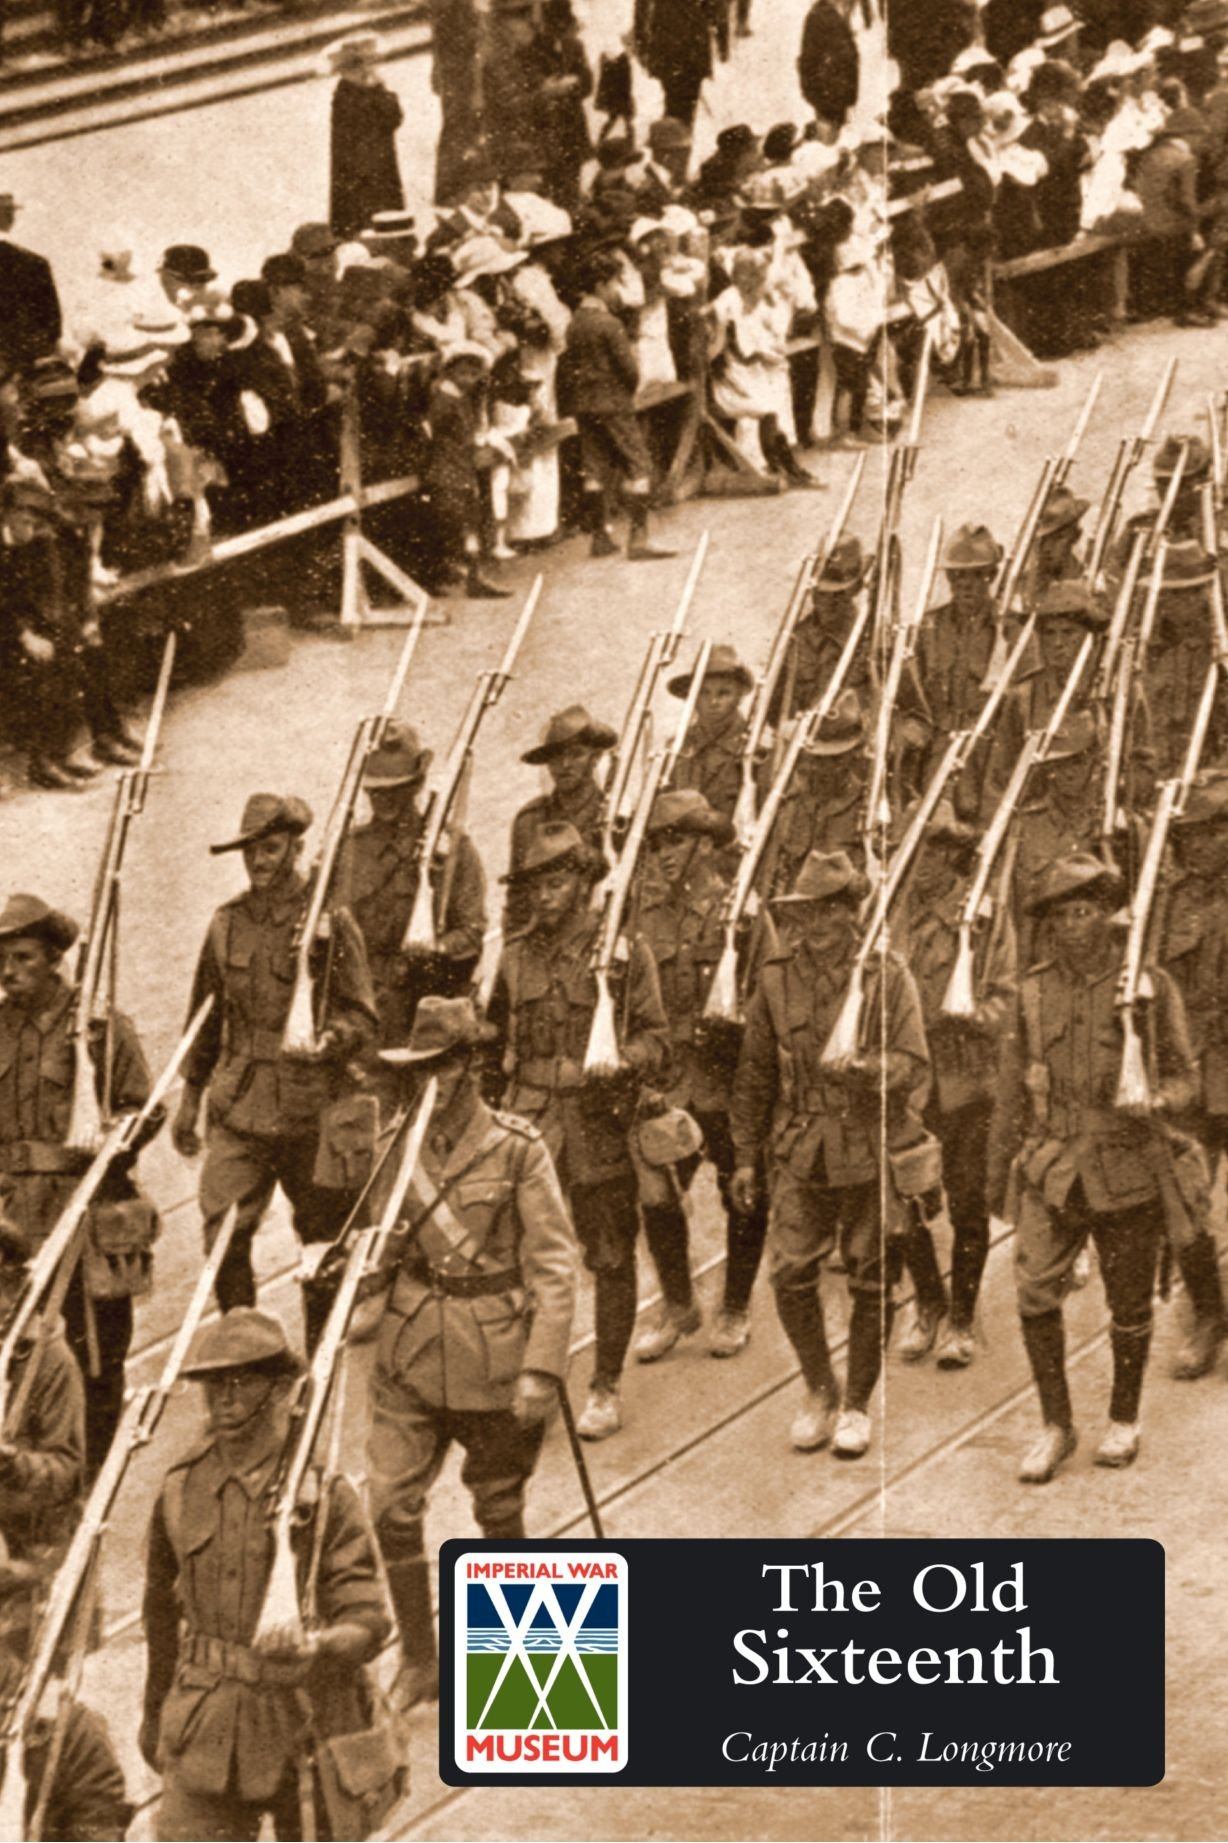 Read Online The Old Sixteenth Being a Record of the 16th Battalion A.I.F., During the Great War 1914-1918 ebook